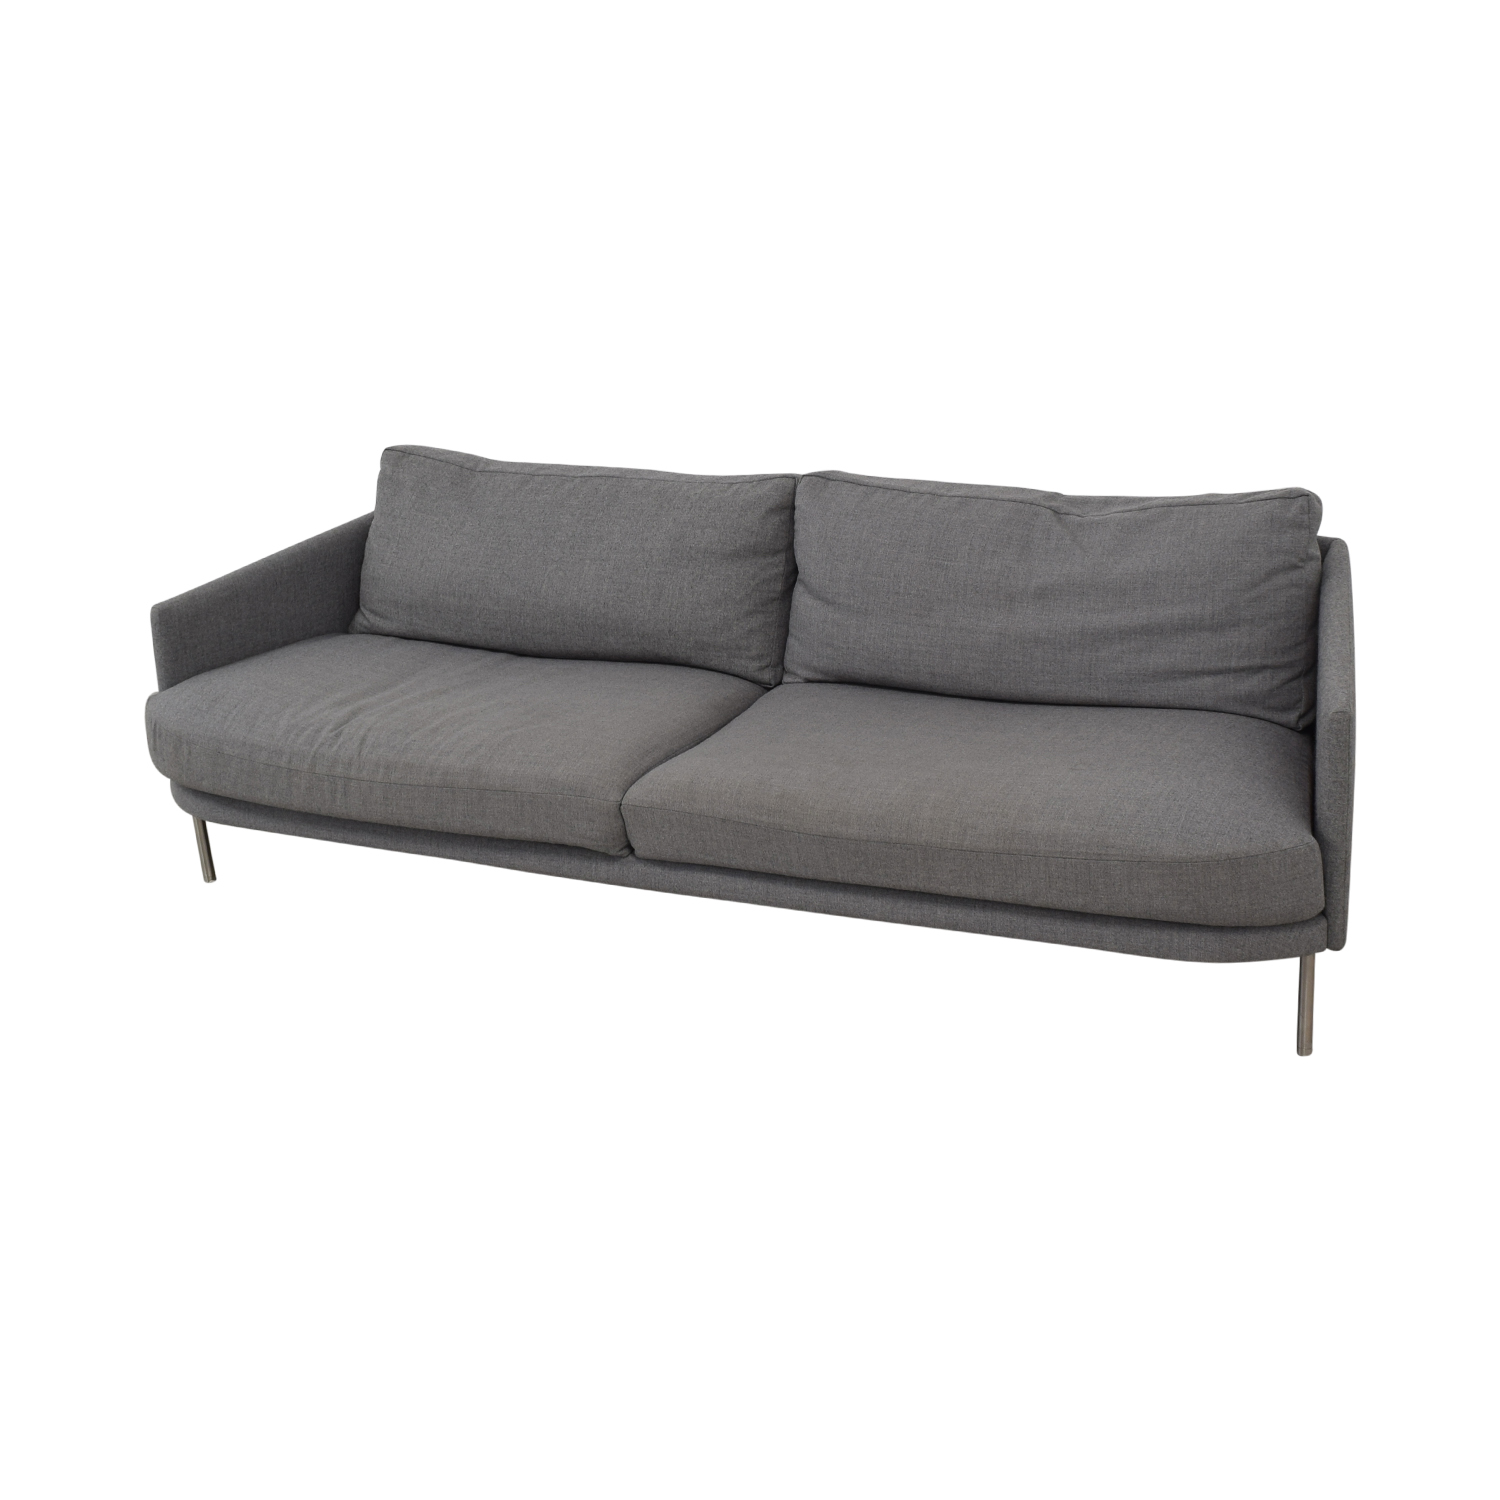 shop Design Within Reach Design Within Reach Two Cushion Sofa online